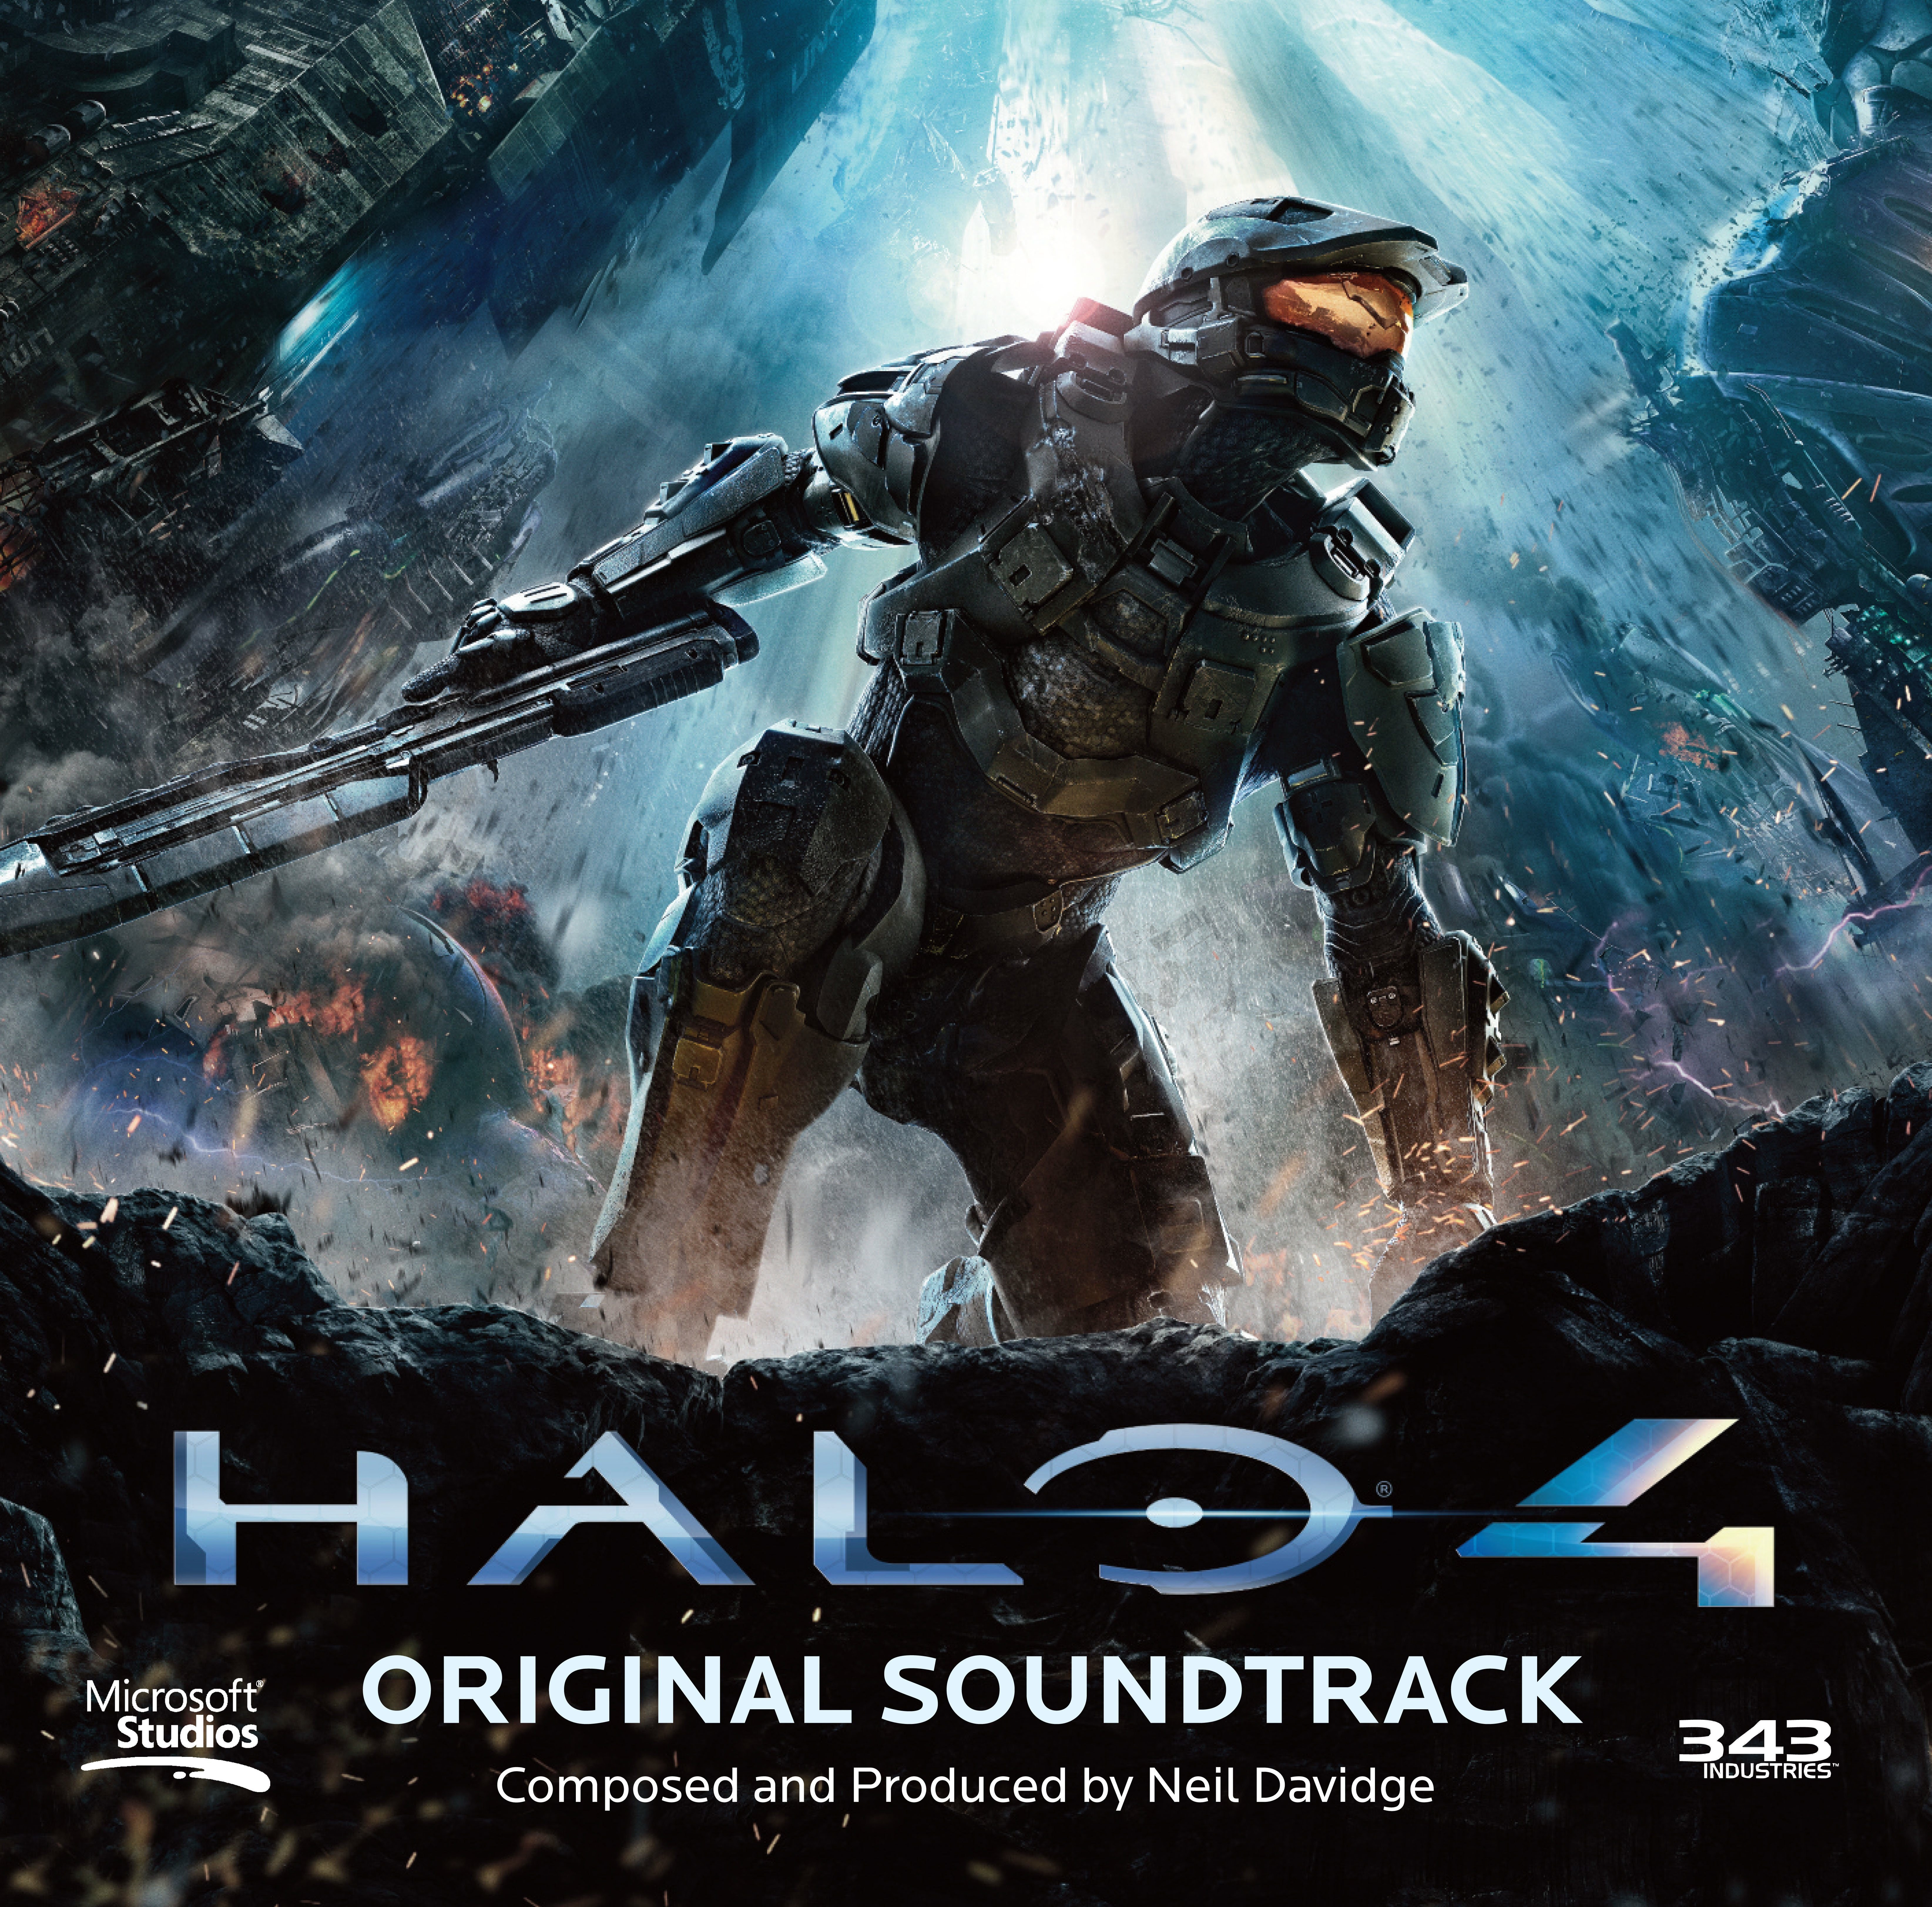 Halo 4: Original Soundtrack